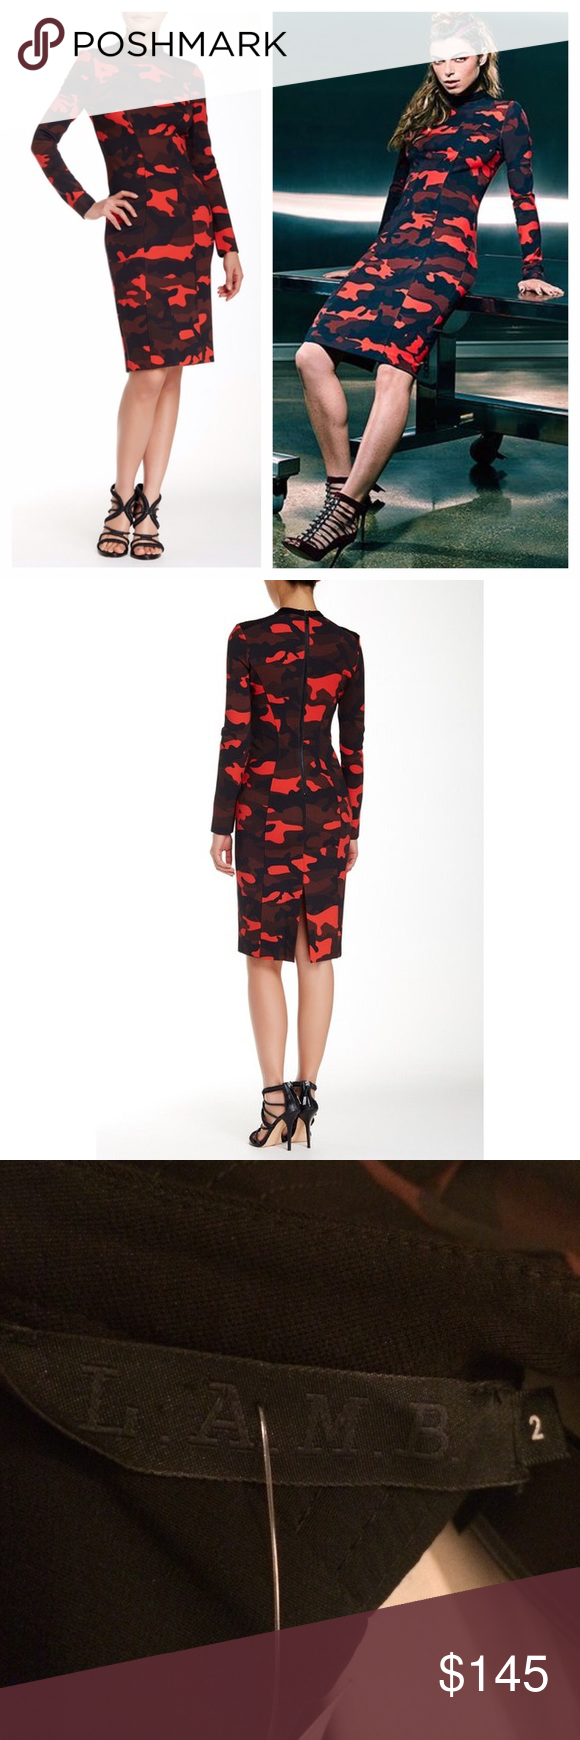 "NEW L.A.M.B. 2015 collection camo print dress New with tags L.A.M.B. 2015 collection camo print dress. Details: - Mock neck - Long sleeves - Back zip closure - Allover camo print - Approx. 40"" length. Pit to pit 16"". - Imported Fiber Content: Shell: 62% rayon, 33% nylon, 5% spandex Combo: 62% rayon, 33% nylon, 5% spandex Lining: 97% polyester, 3% spandex Care: Dry clean only Additional Info: Fit: this style fits true to size. Model's stats for sizing: - Height: 5'9"" - Bust: 34"" - Waist: 23""…"